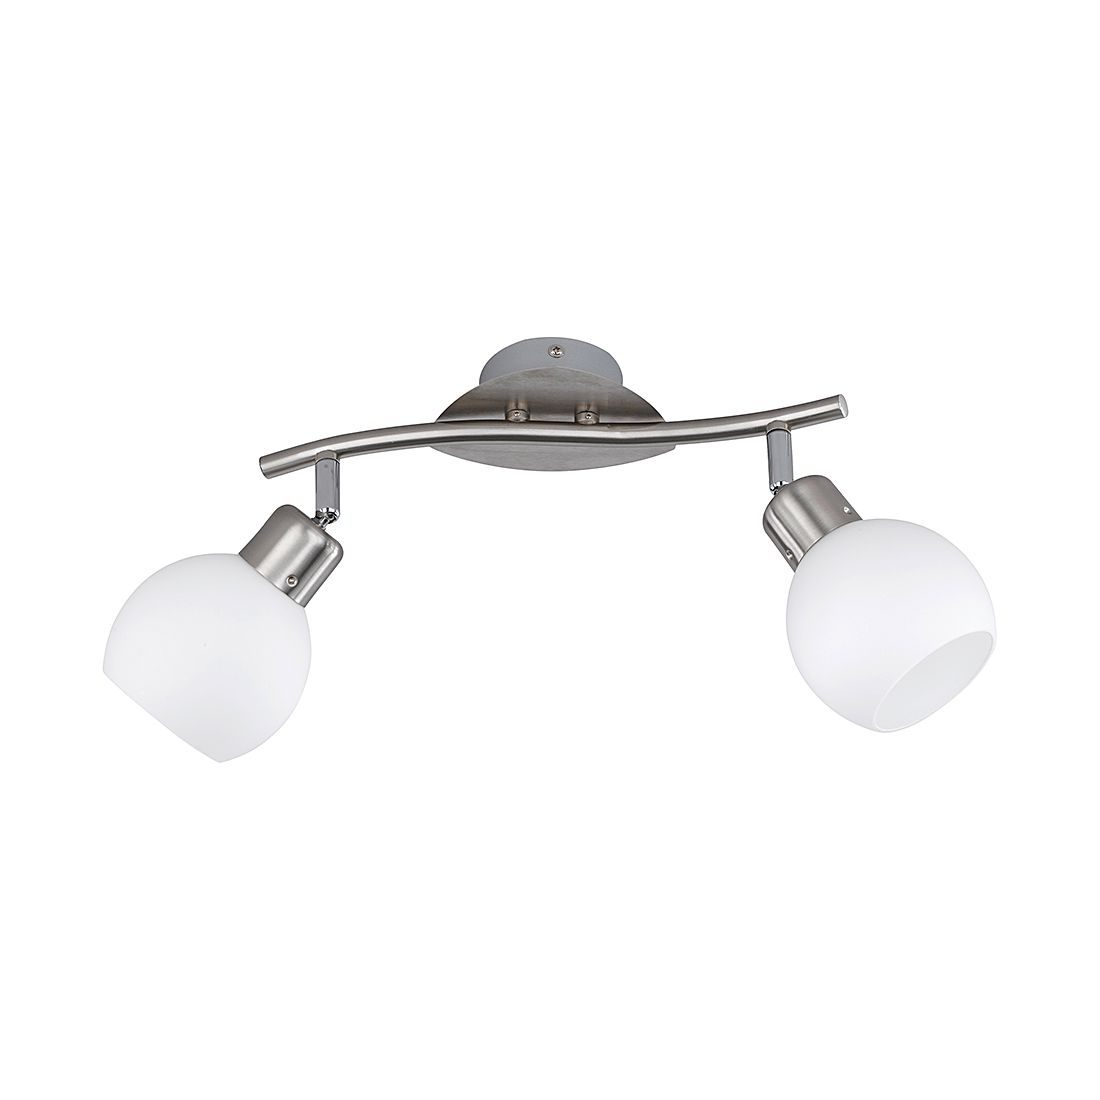 LED-Balken ● Nickel ● 2x4 W- Lux A++